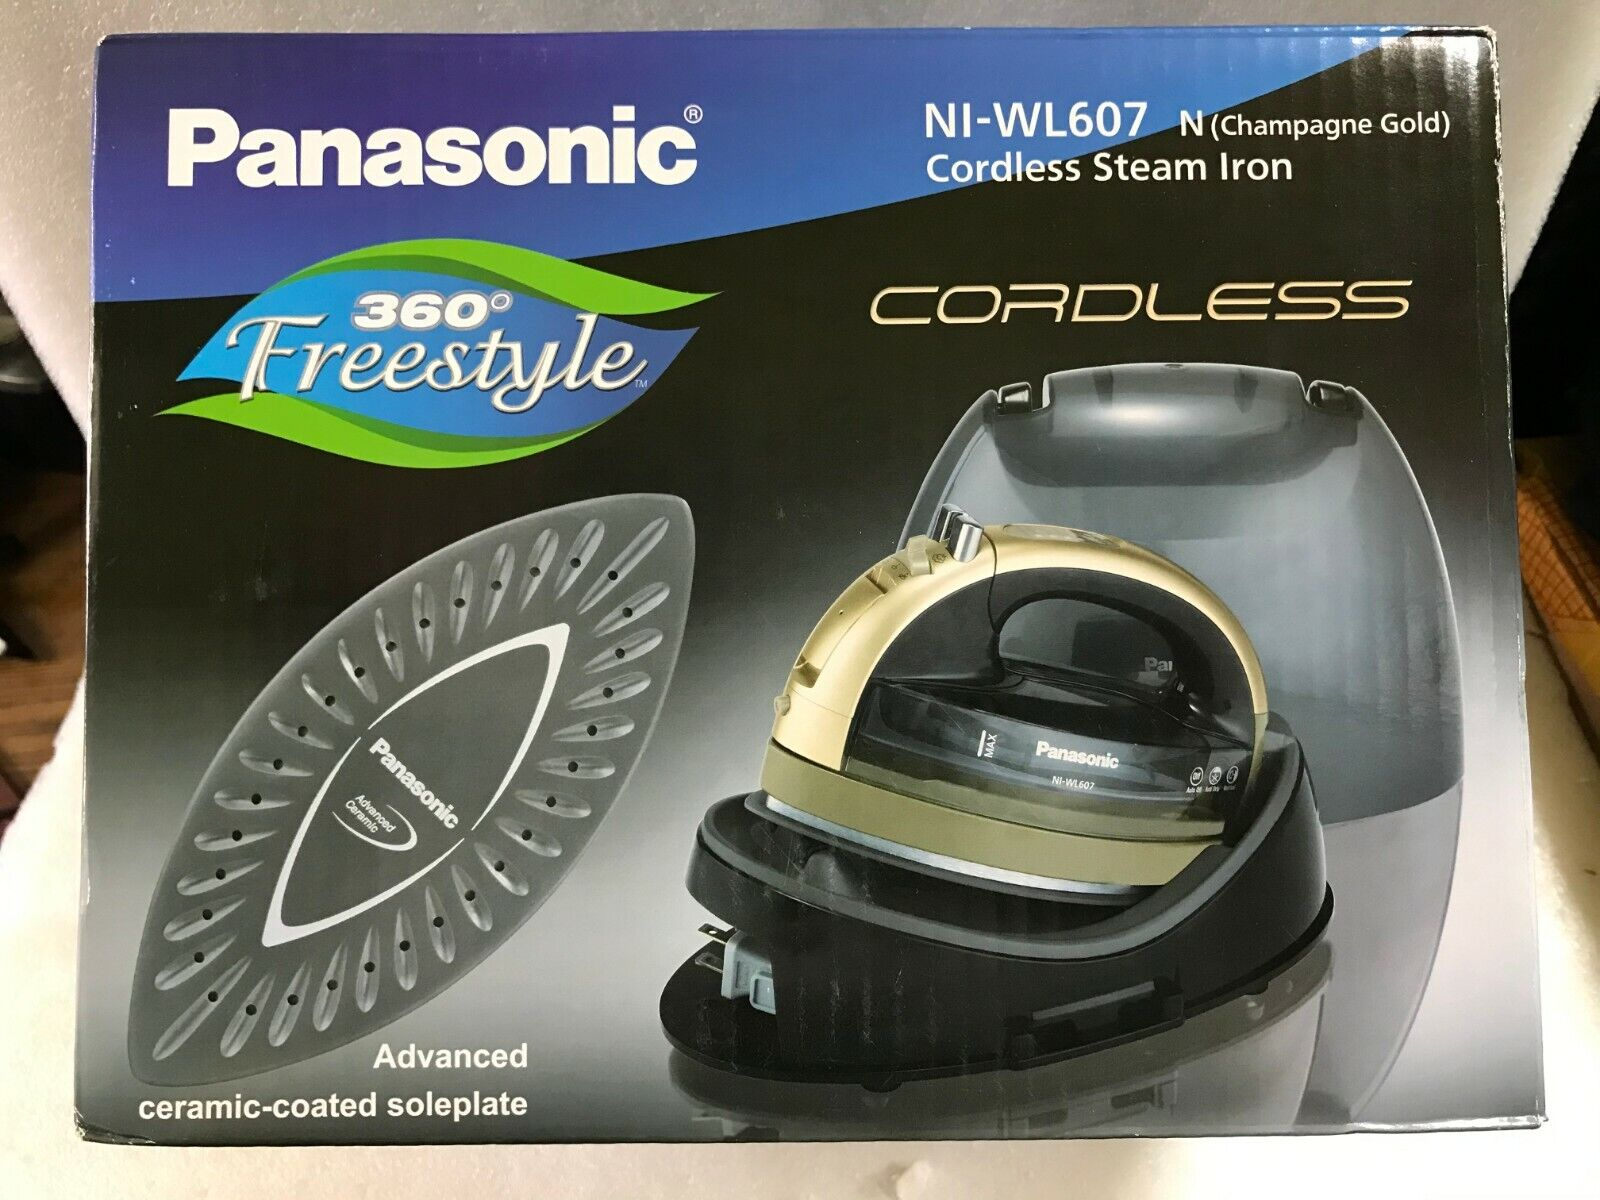 NEW Panasonic NI-WL607 Champagne Panasonic 360 Freestyle Cor